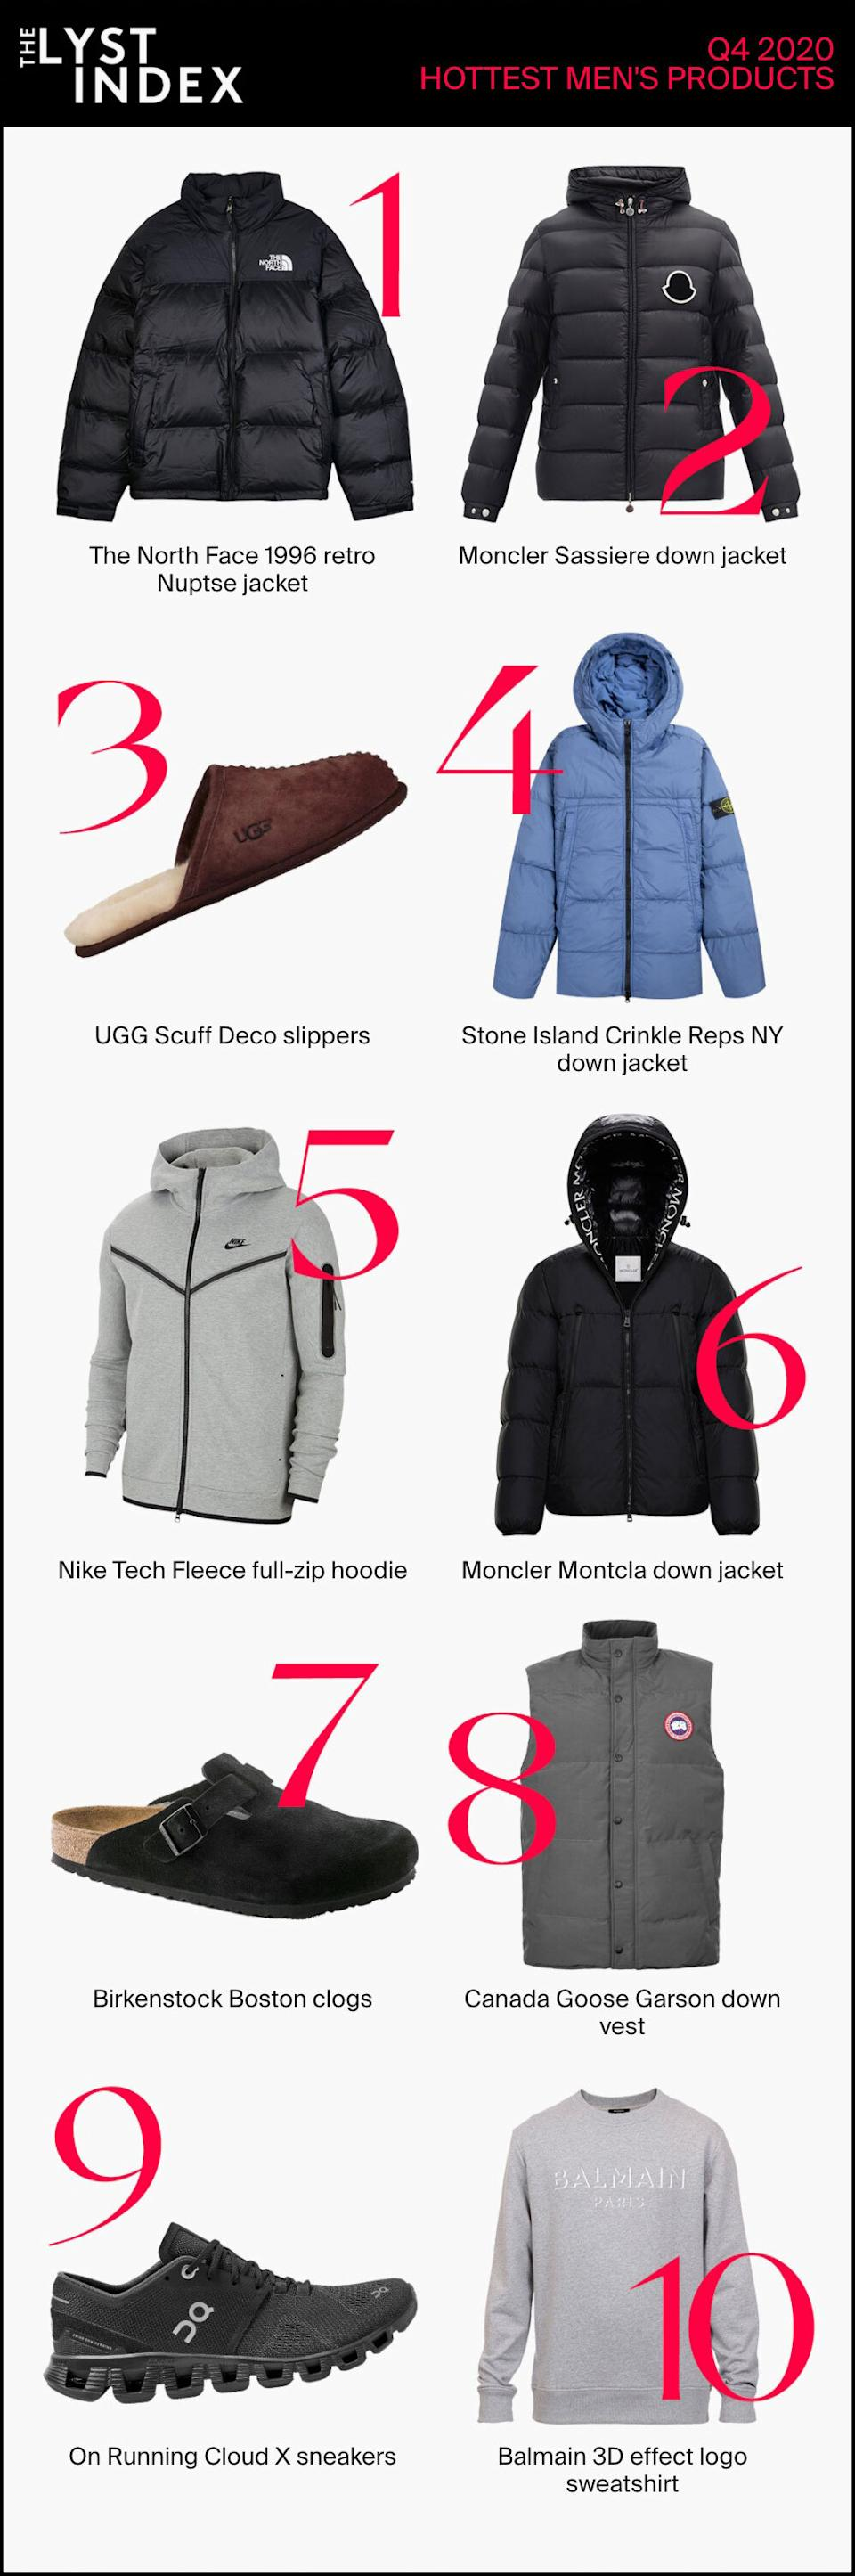 The Lyst Index has found The North Face 1996 Retro Nuptse Jacket was the hottest product for men in the last quarter of 2020.  (Lyst)